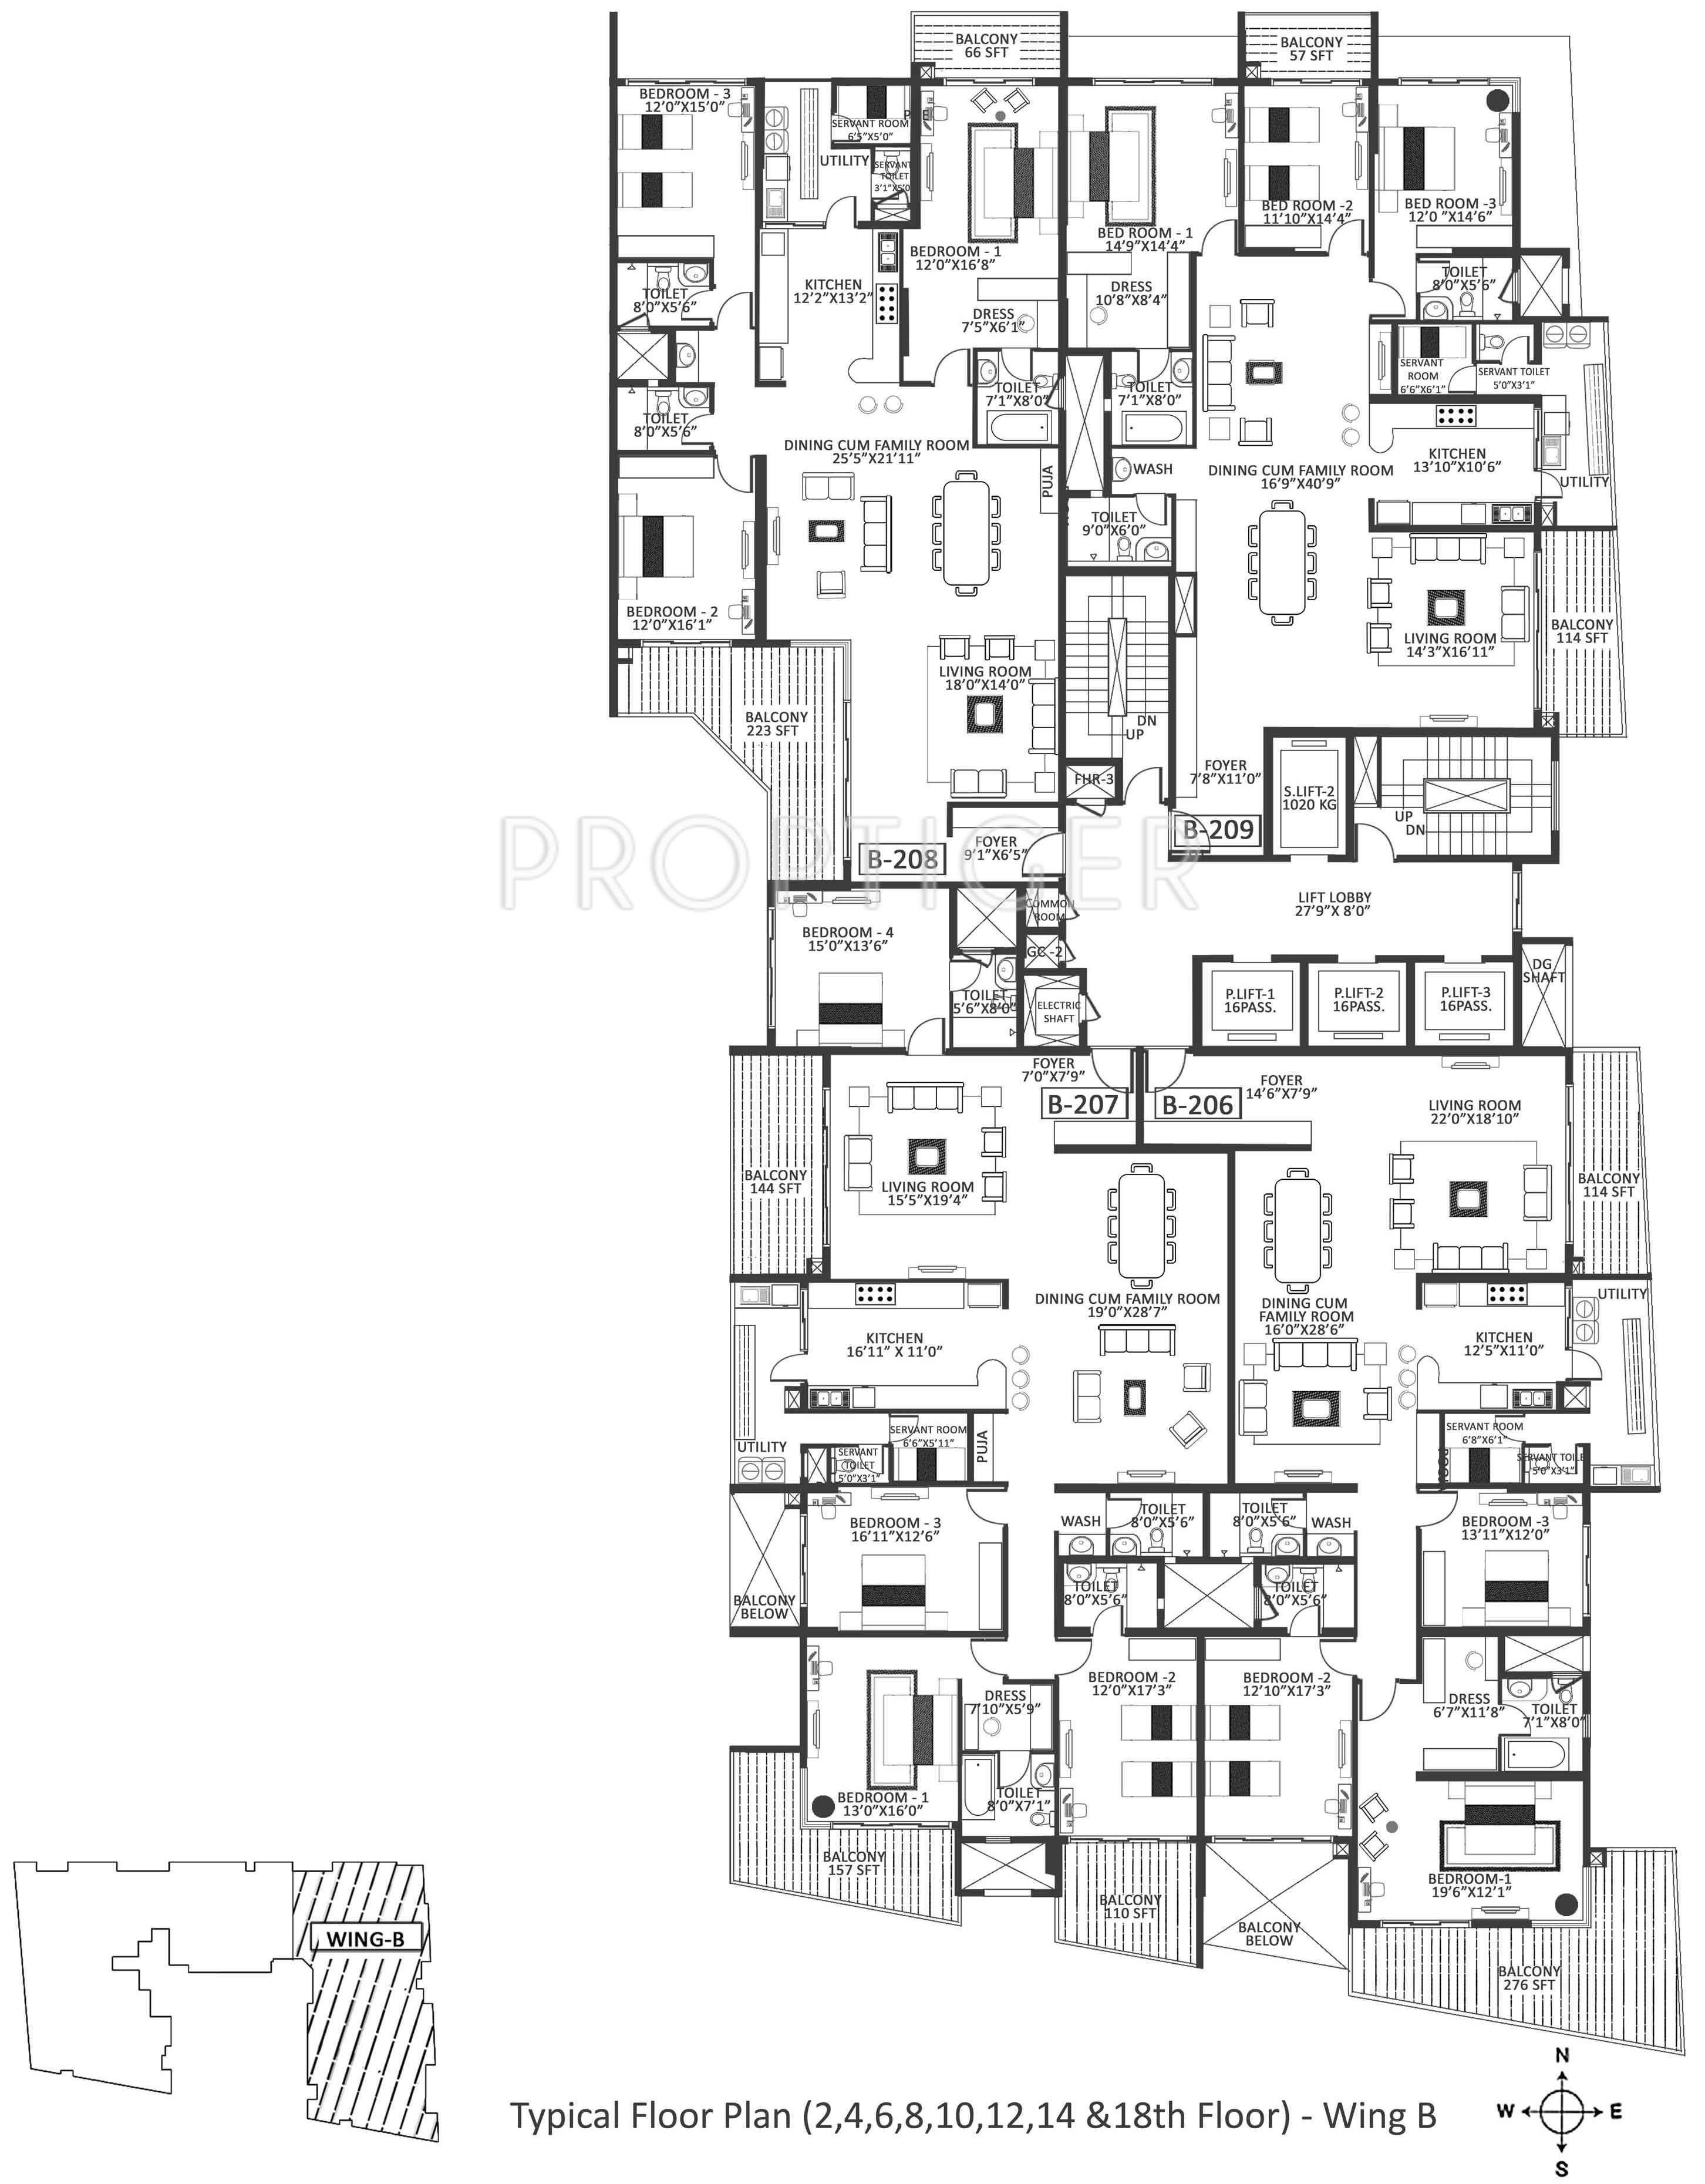 2927 Sq Ft 3 Bhk 3t Apartment For Sale In Godrej Properties Platinum Gas Wiring Diagram Stove Whirlpool Sf 3300 More Photos